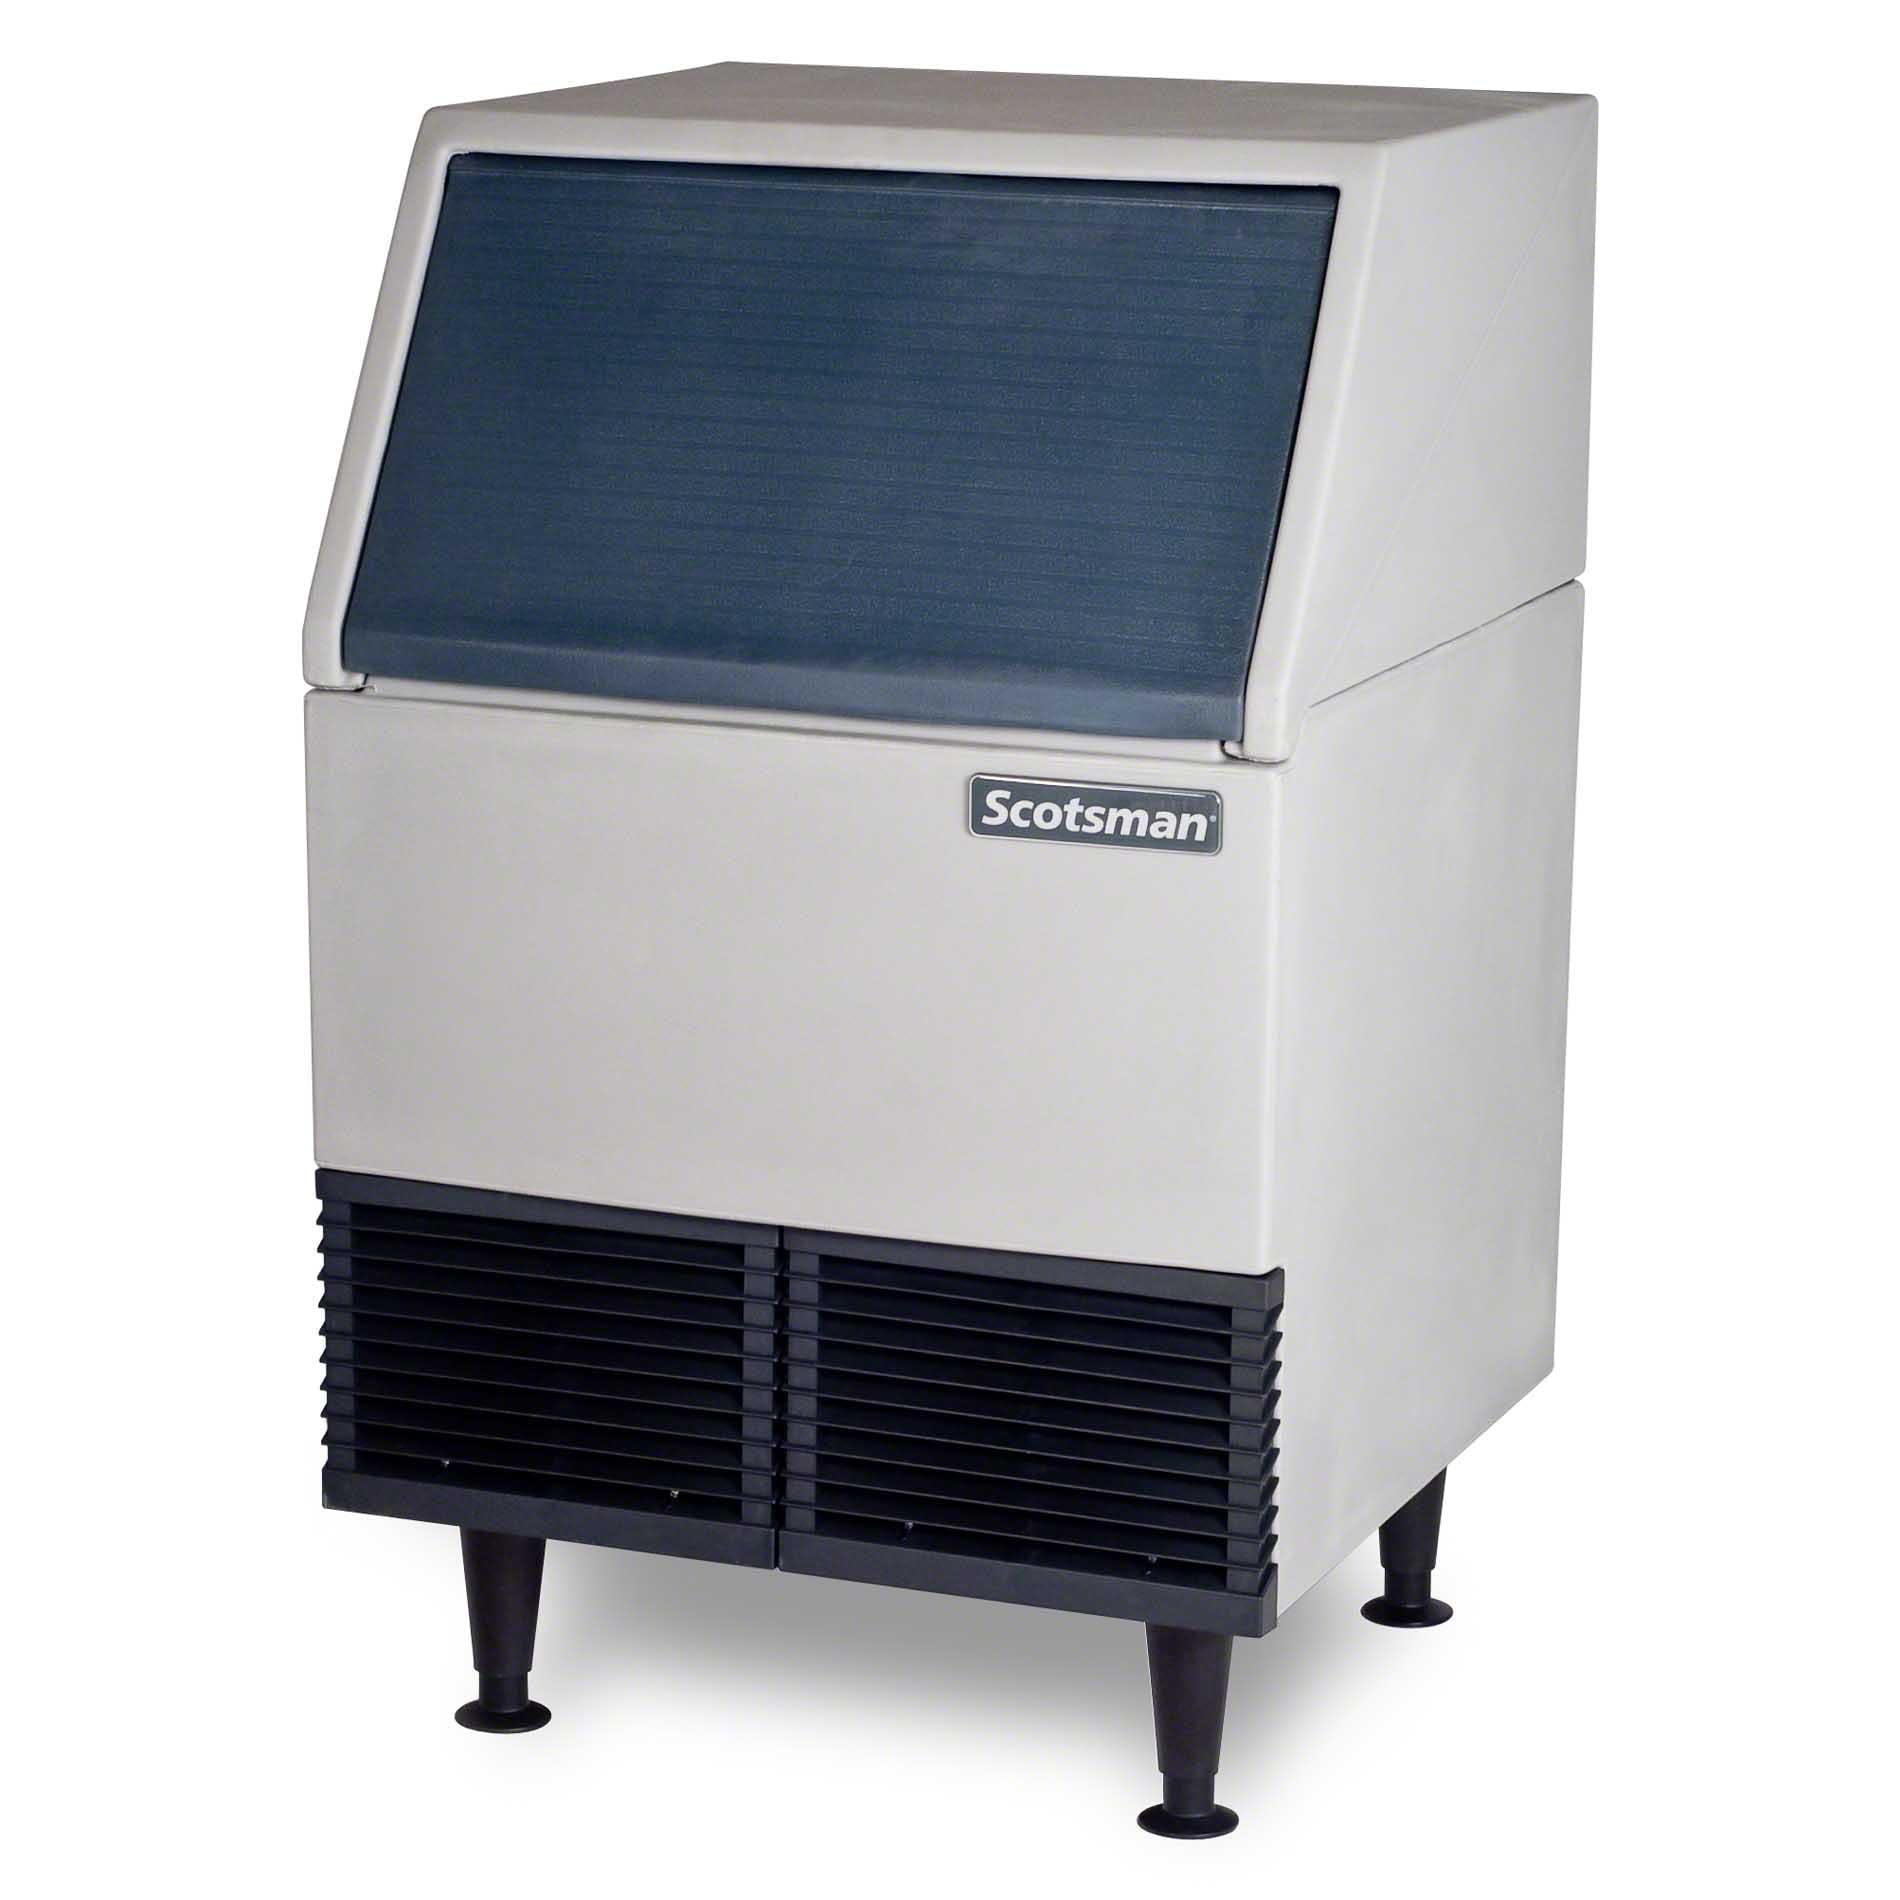 Scotsman AFE424A 1A 395 lb Self Contained Flake Ice Machine w